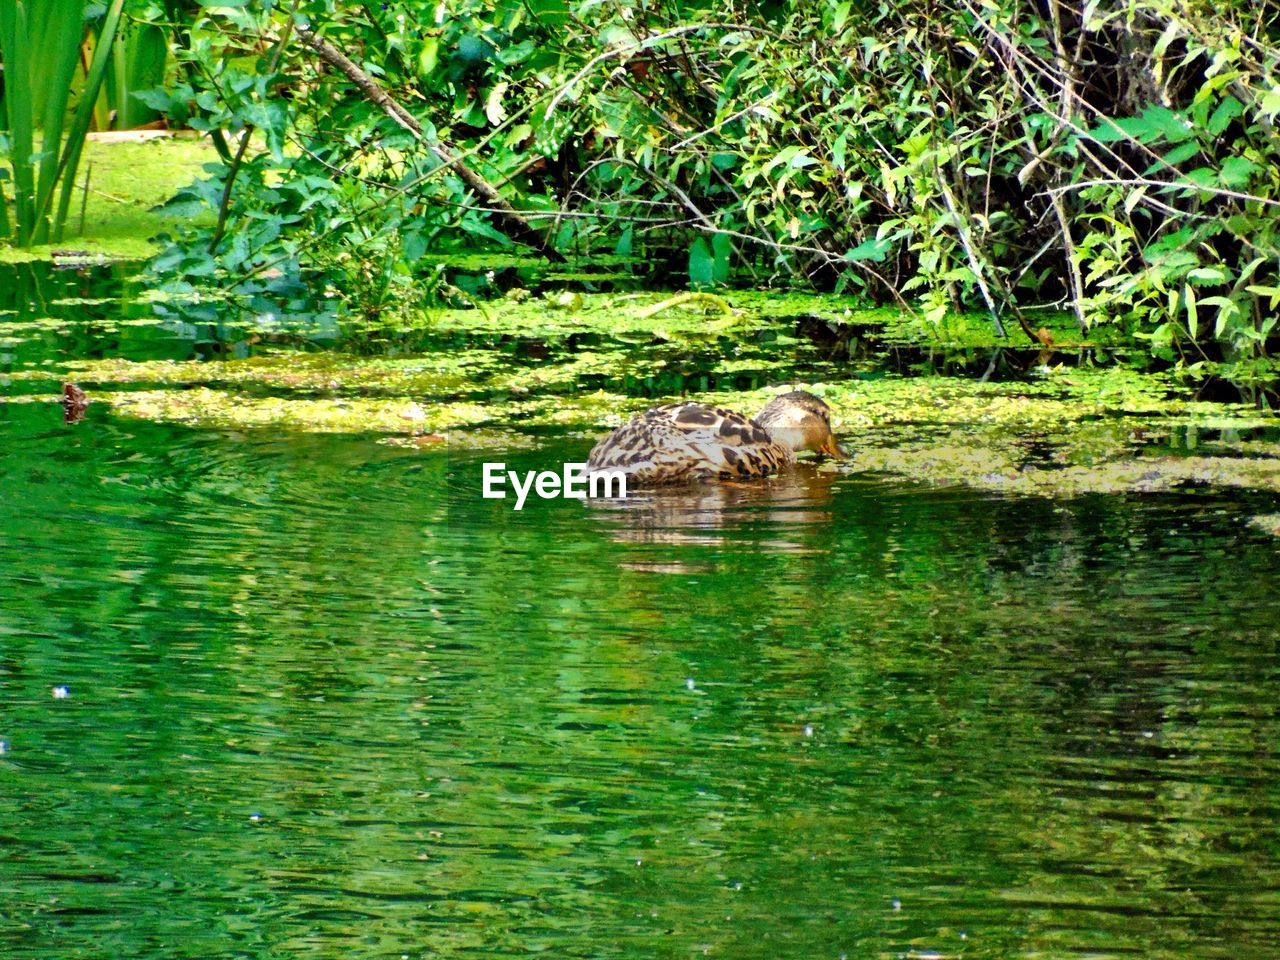 animals in the wild, animal themes, wildlife, nature, one animal, water, green color, waterfront, no people, animal wildlife, day, reflection, outdoors, plant, mammal, tree, swimming, grass